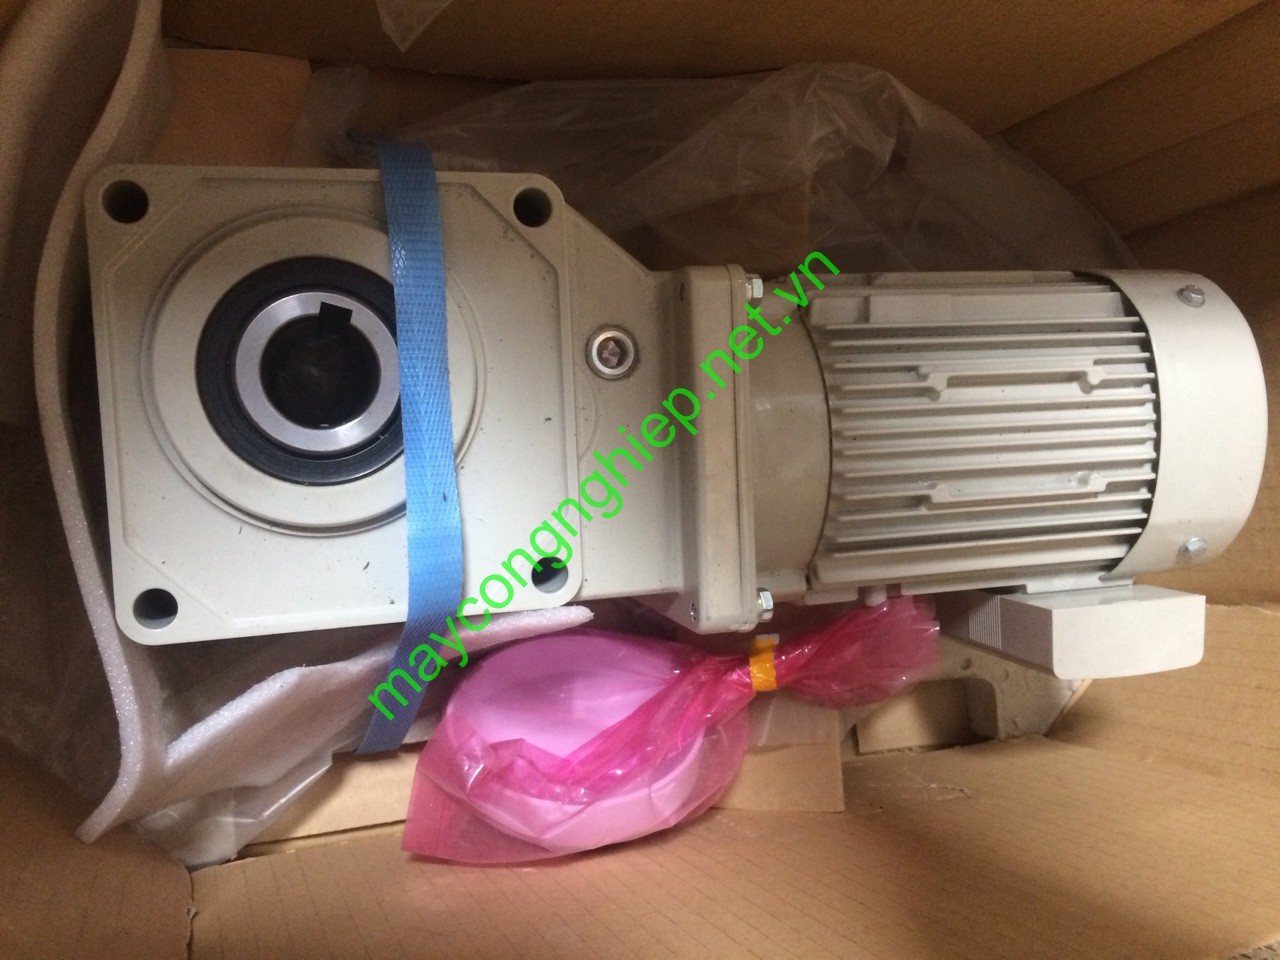 motor-giam-toc-sumitomo-cot-am-1hp-1-60